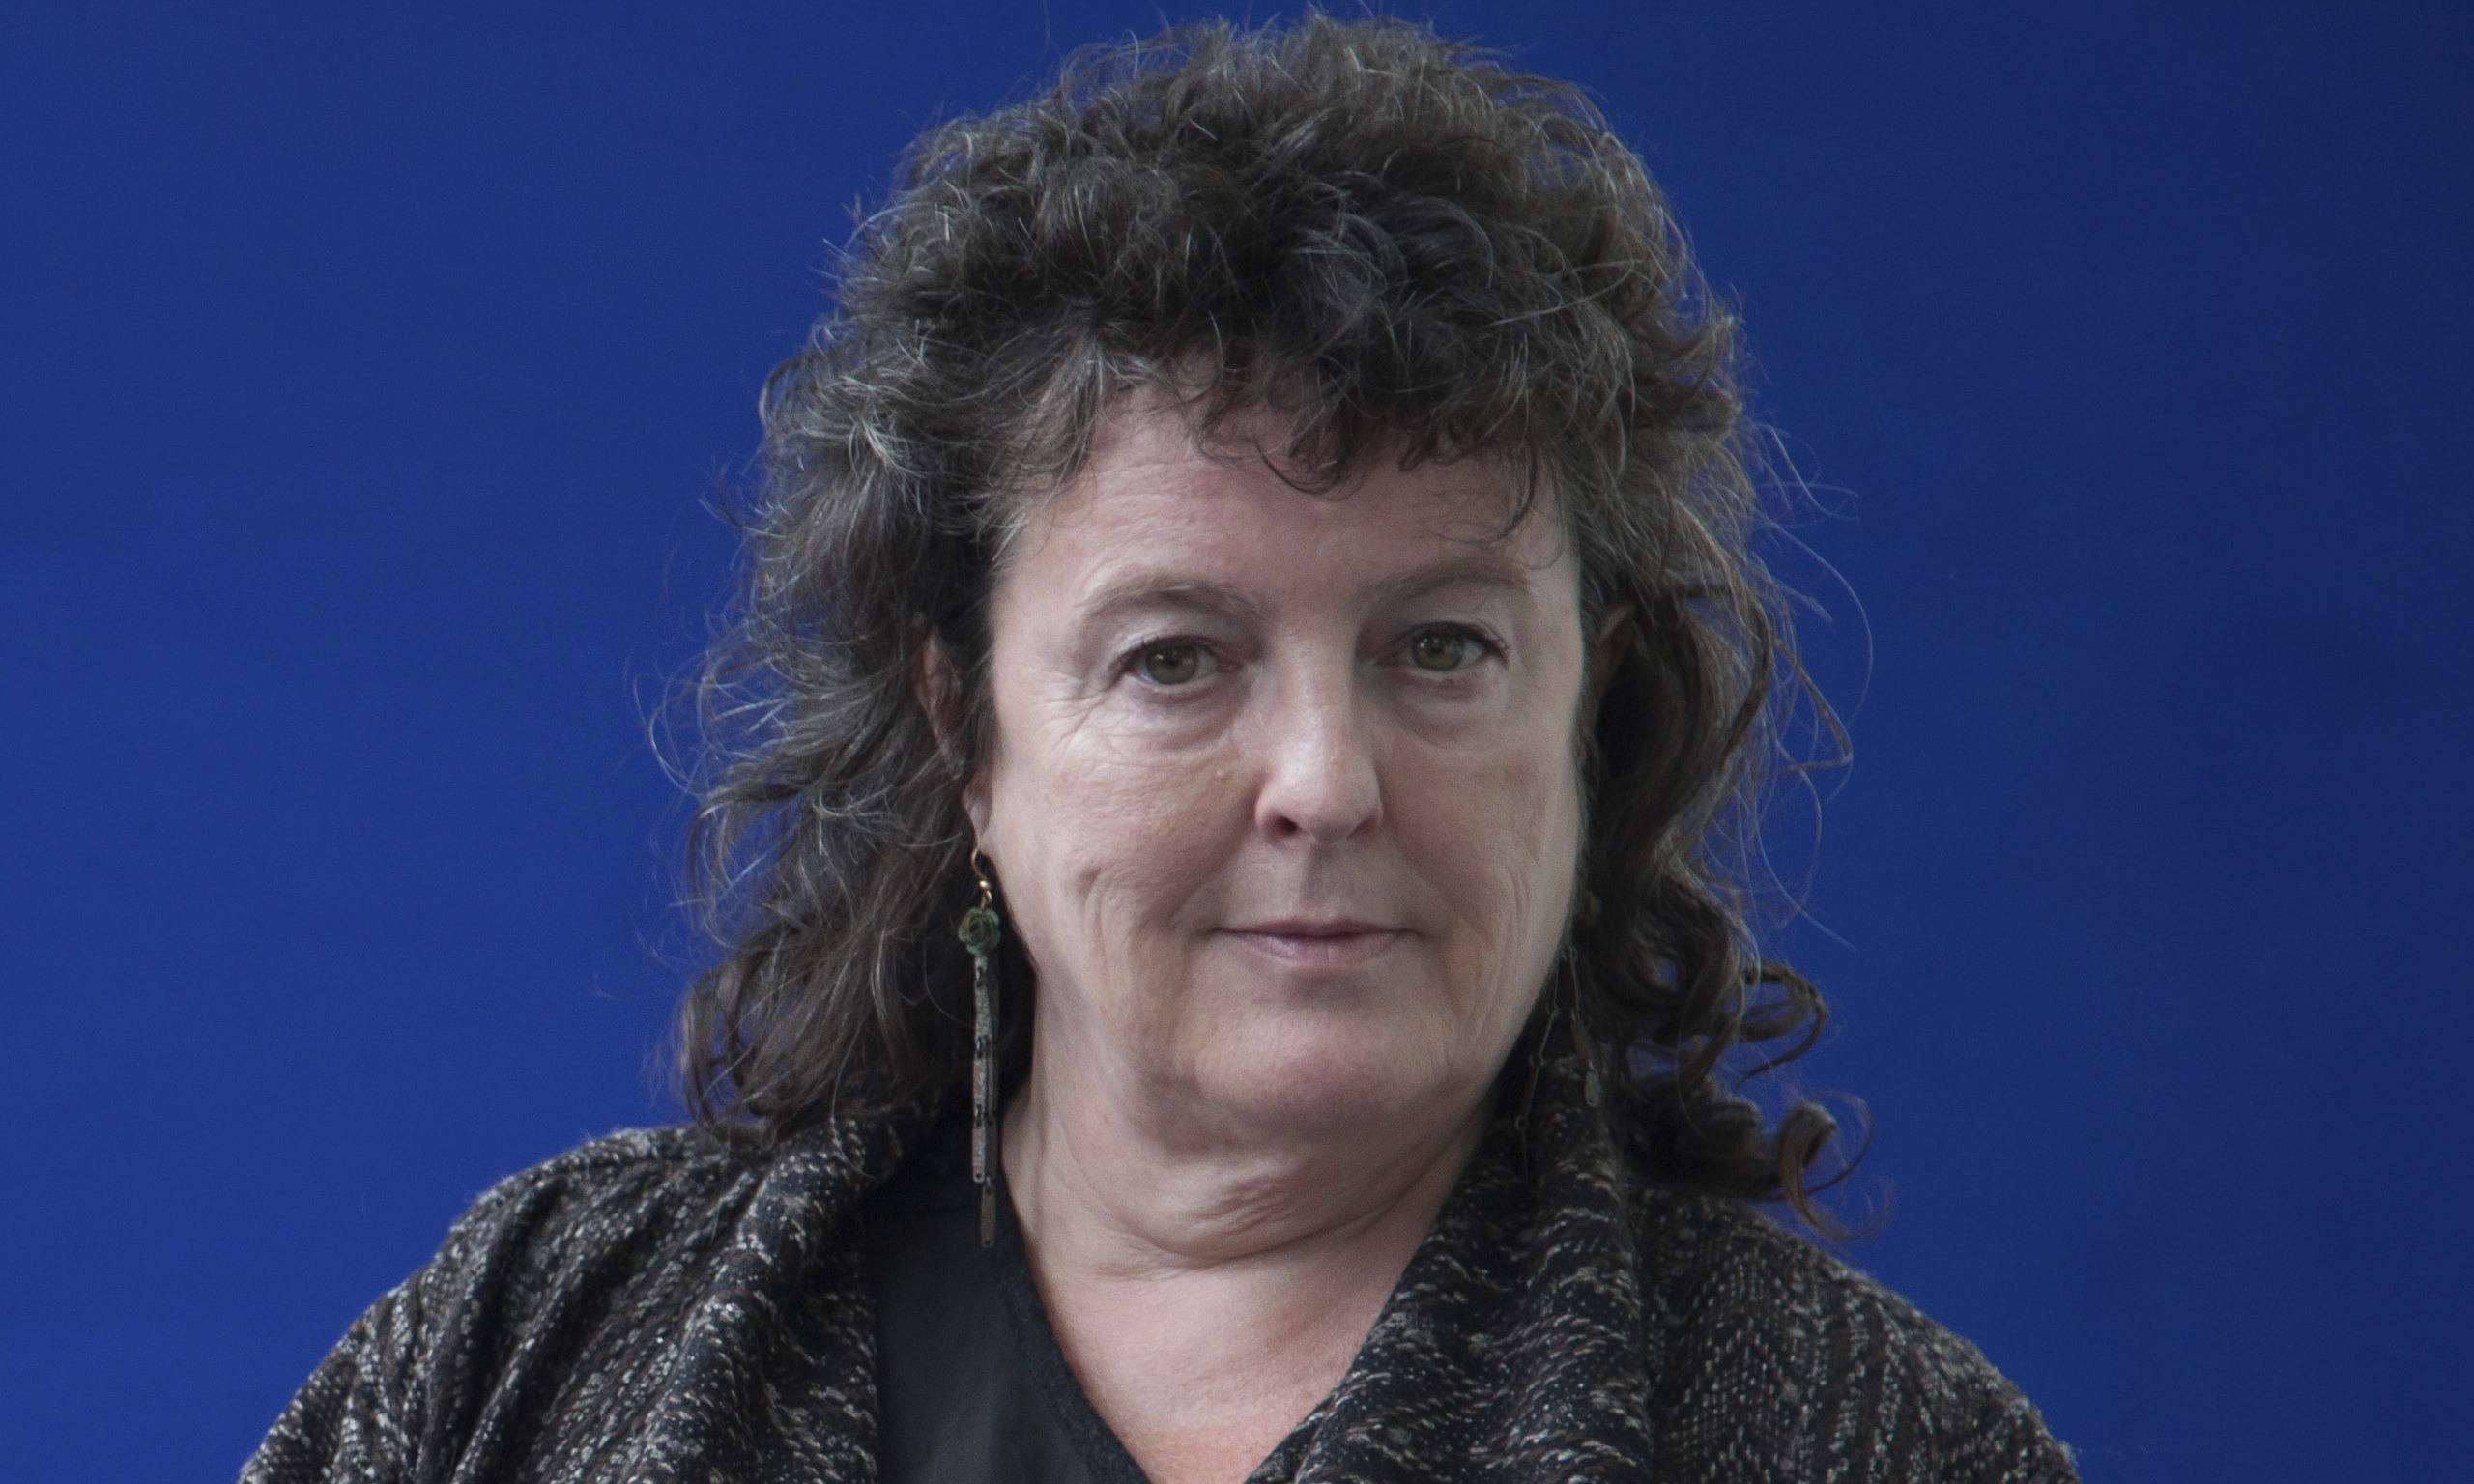 carol ann duffy wintering Phone has emotion, missing them, lifeline, don't want to ring, replaces person.